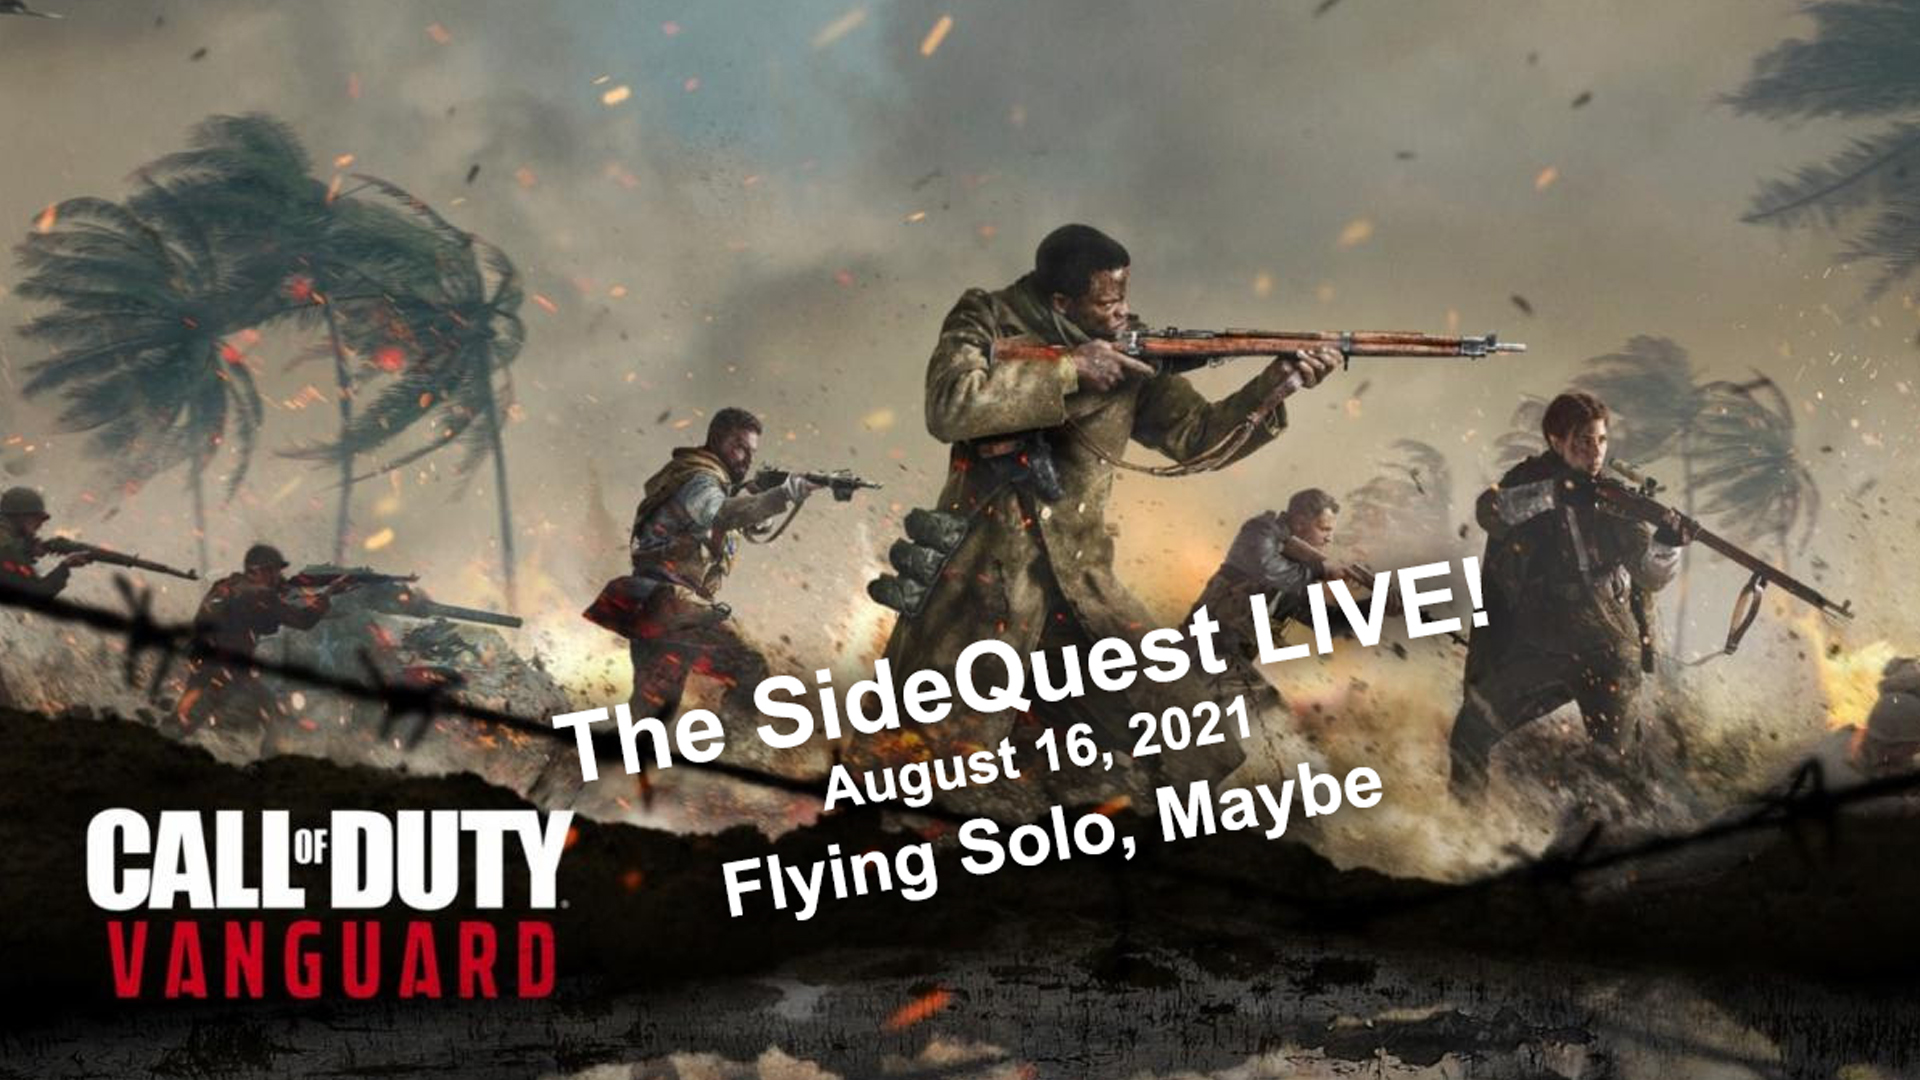 The SideQuest LIVE! August 16, 2021: Flying Solo, Maybe